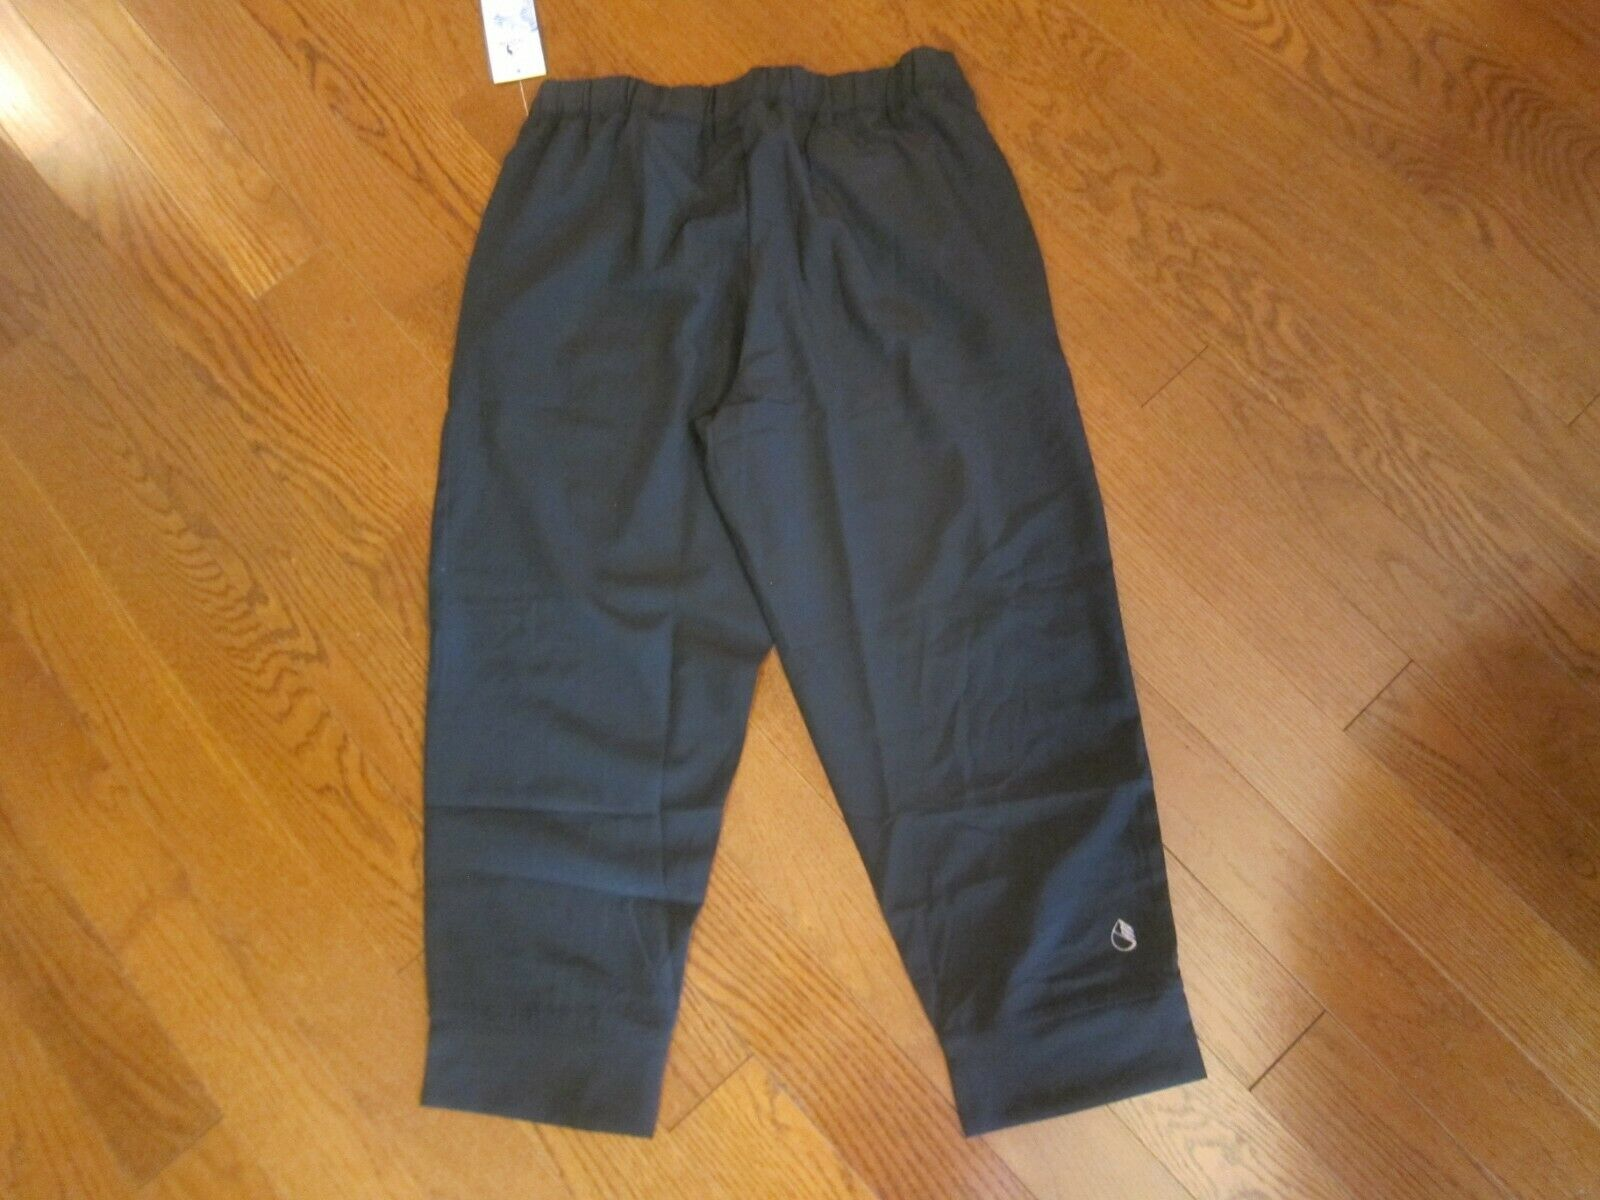 nwt capri jogger pants women s large